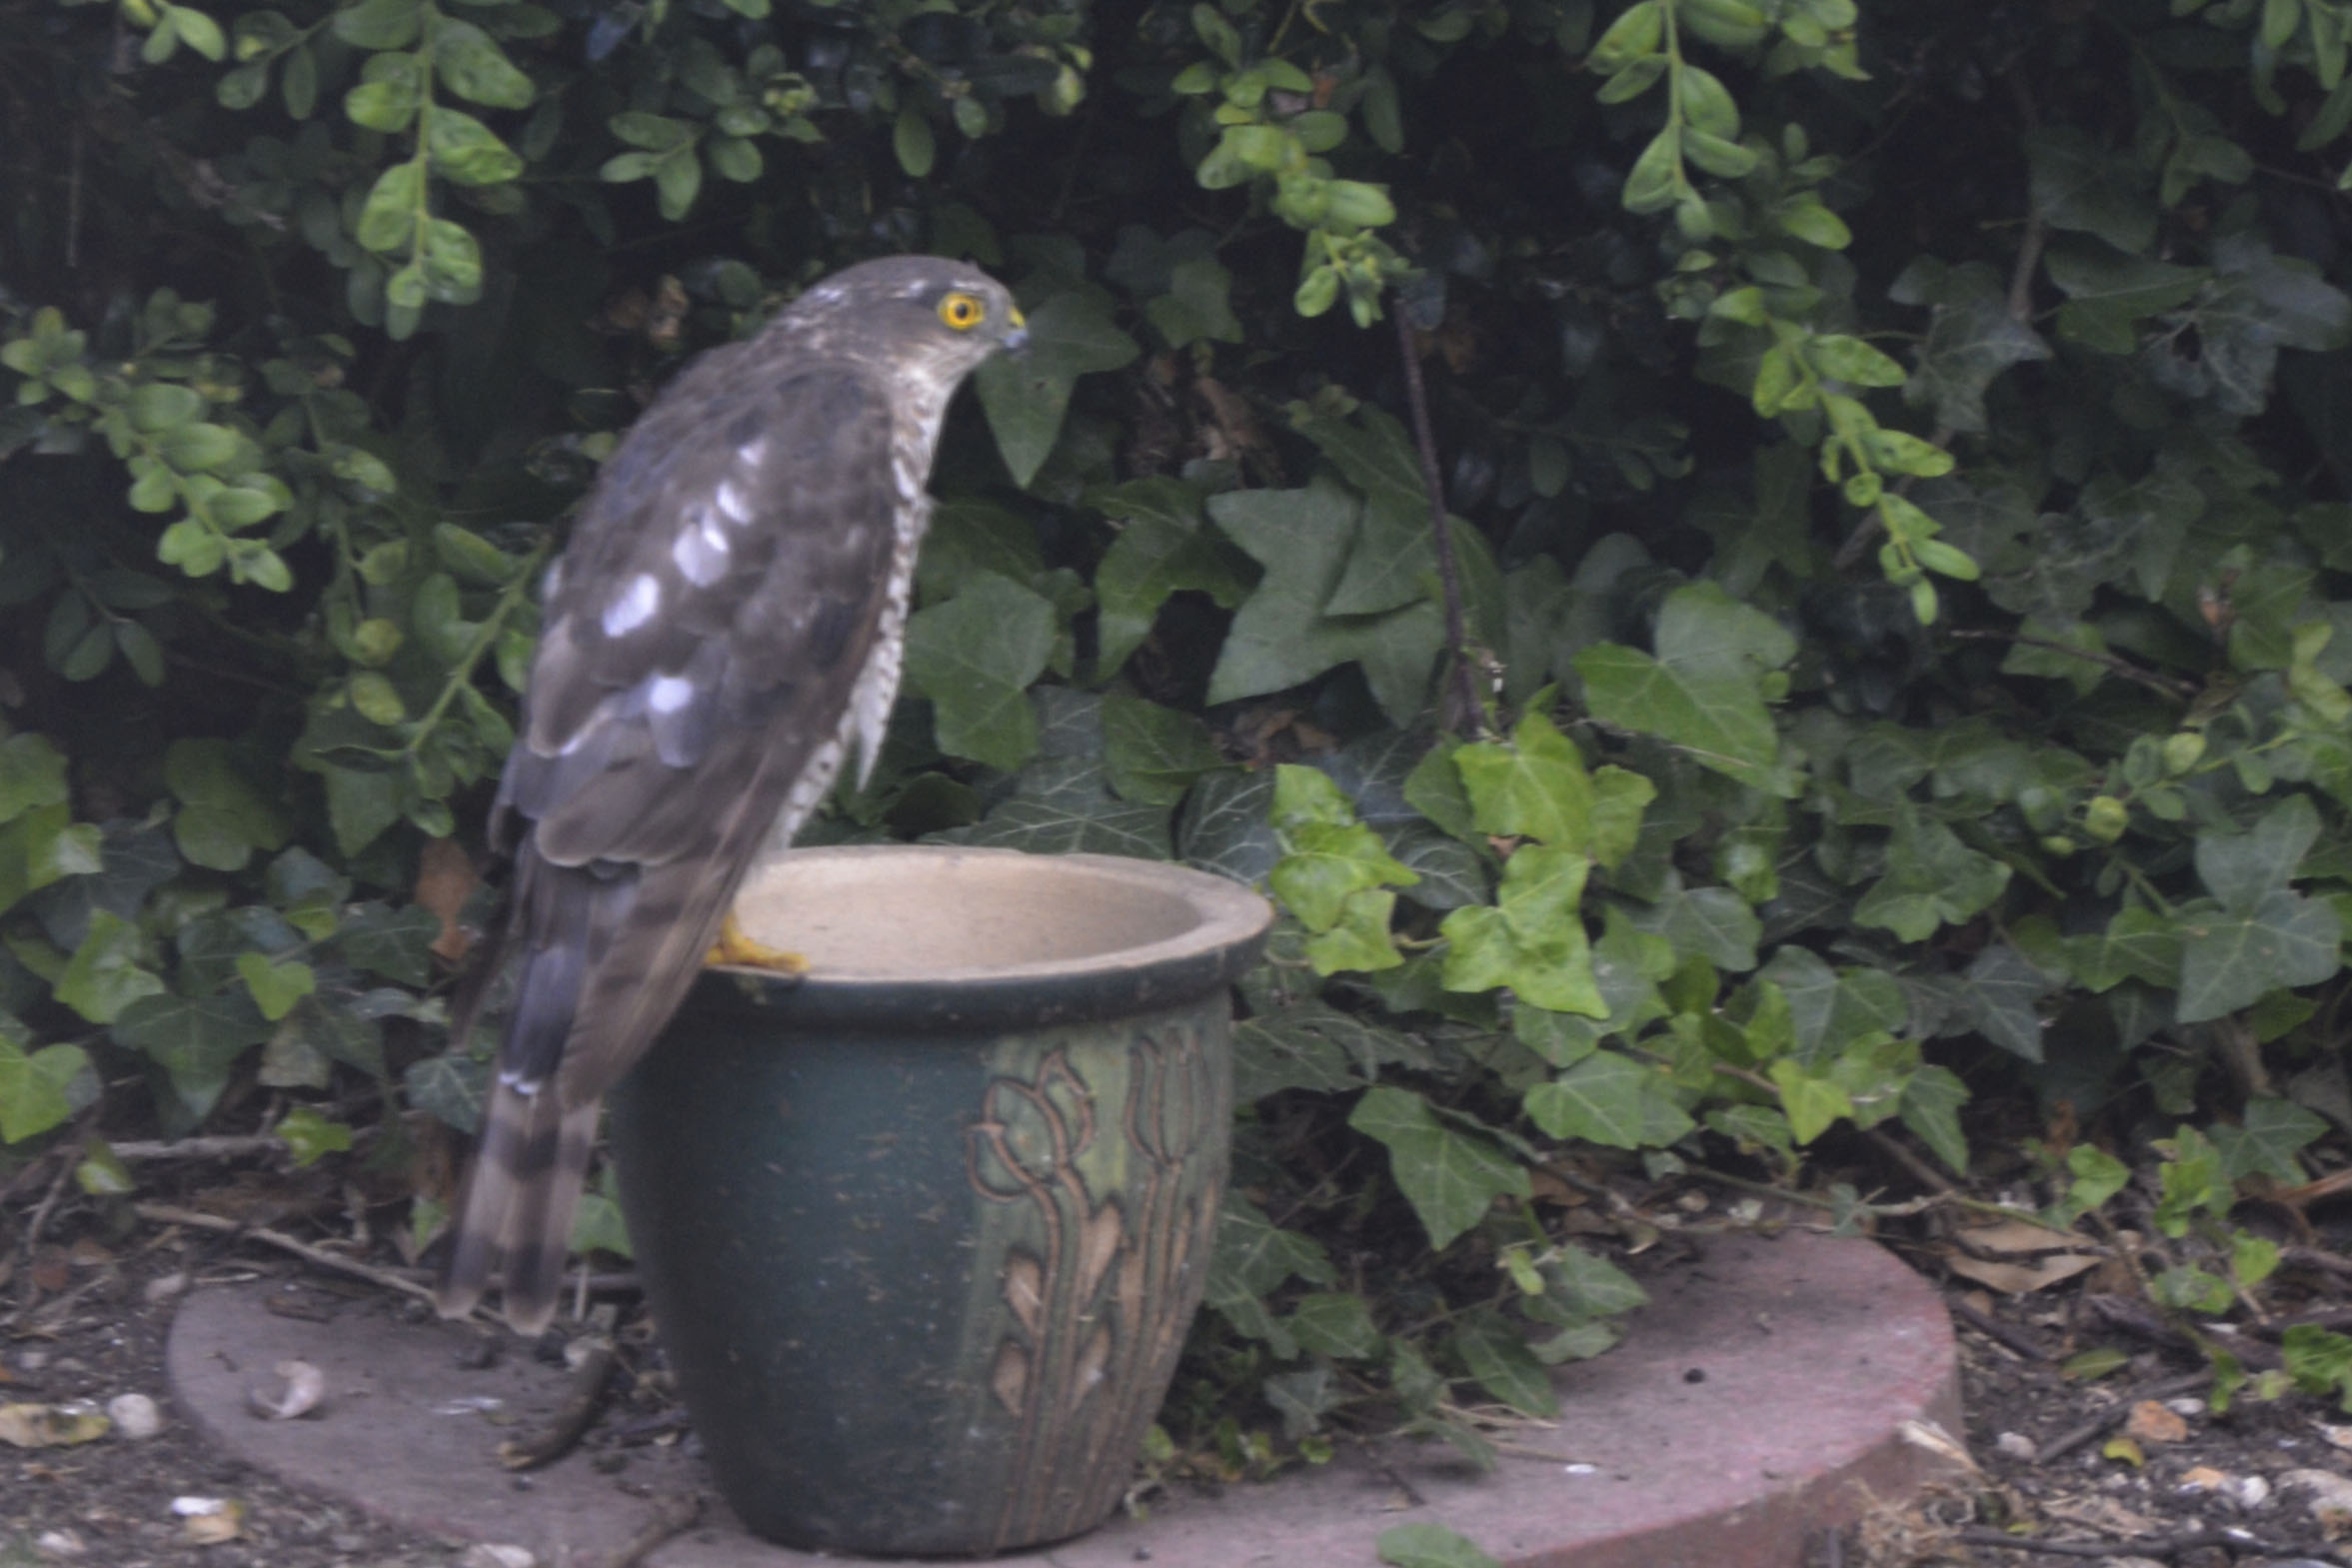 Sparrowhawk in the Centre of the Village